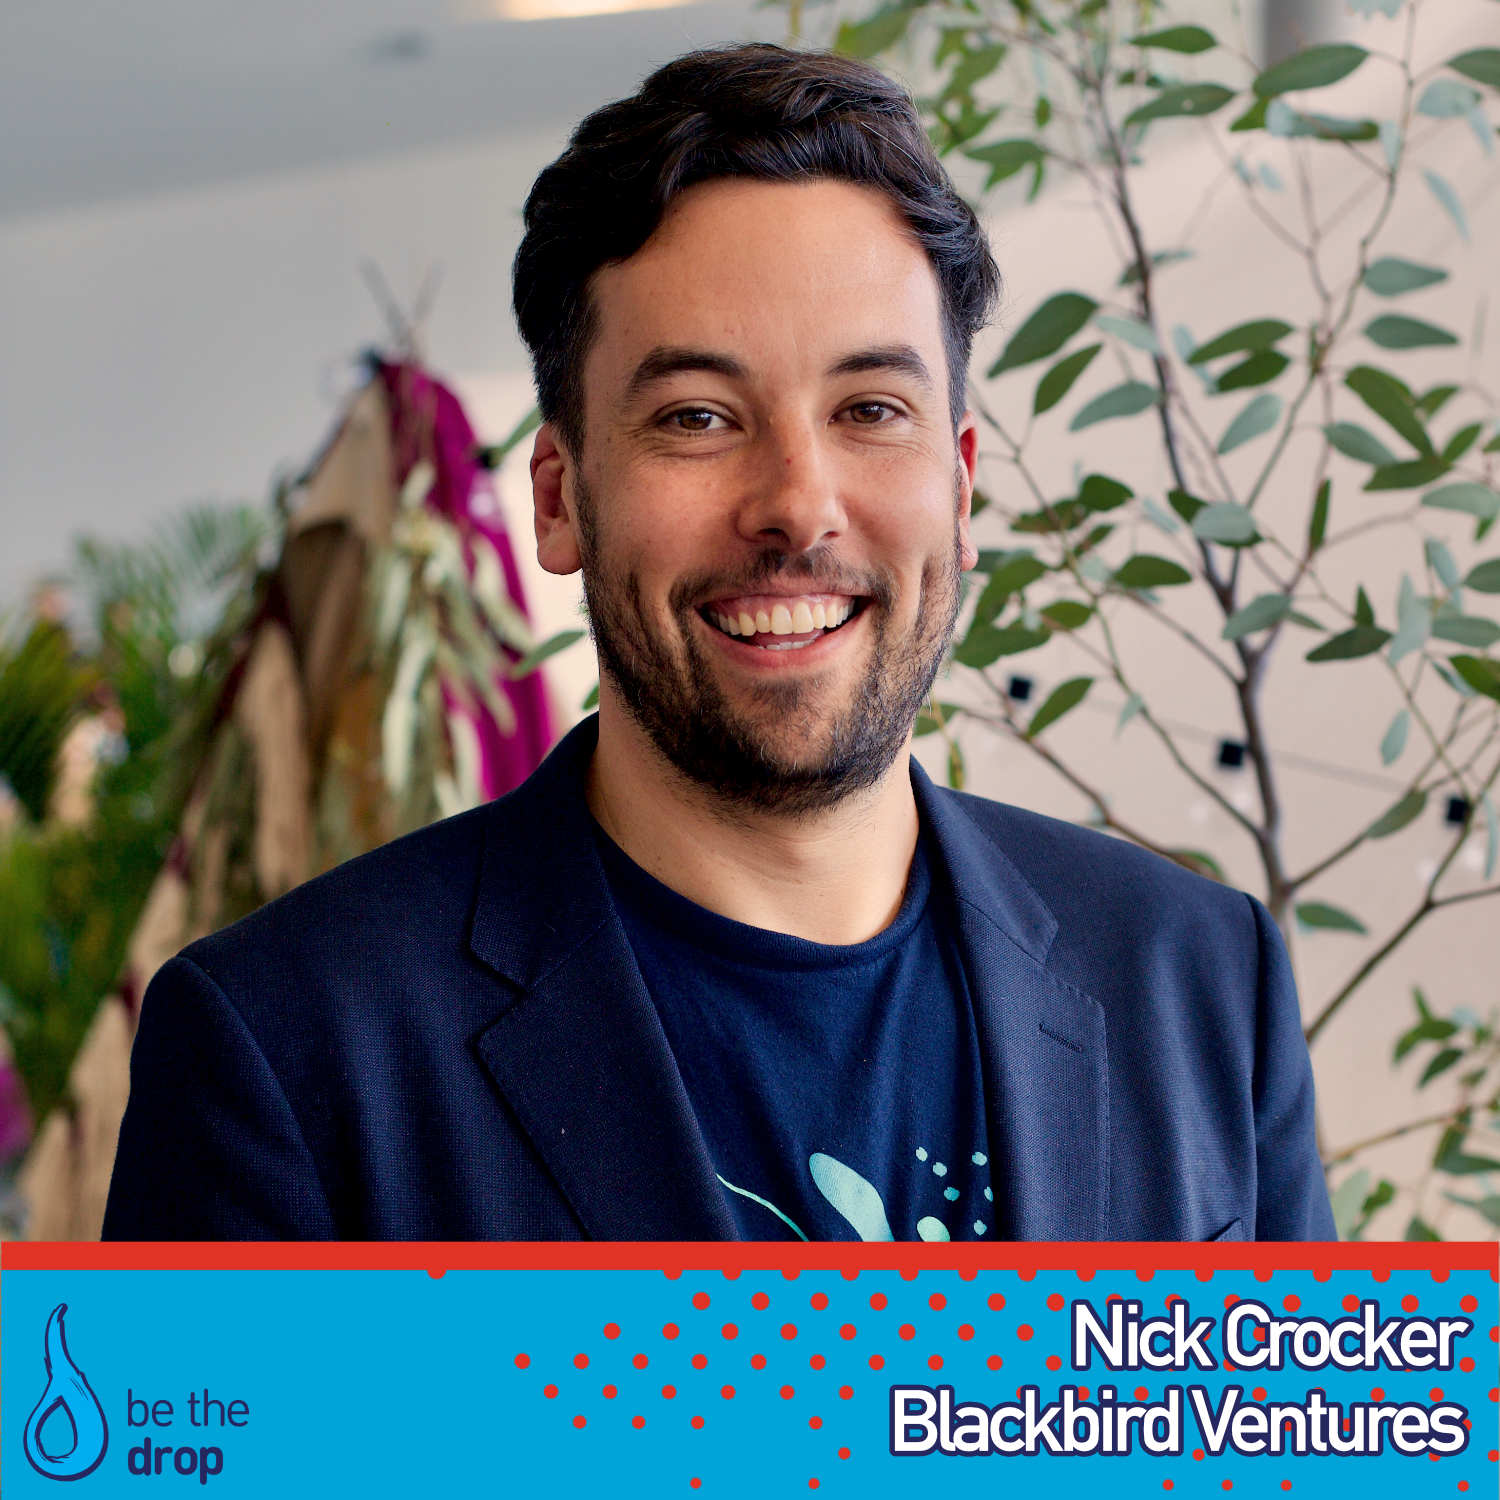 Interview with Australian entrepreneur Nick Crocker